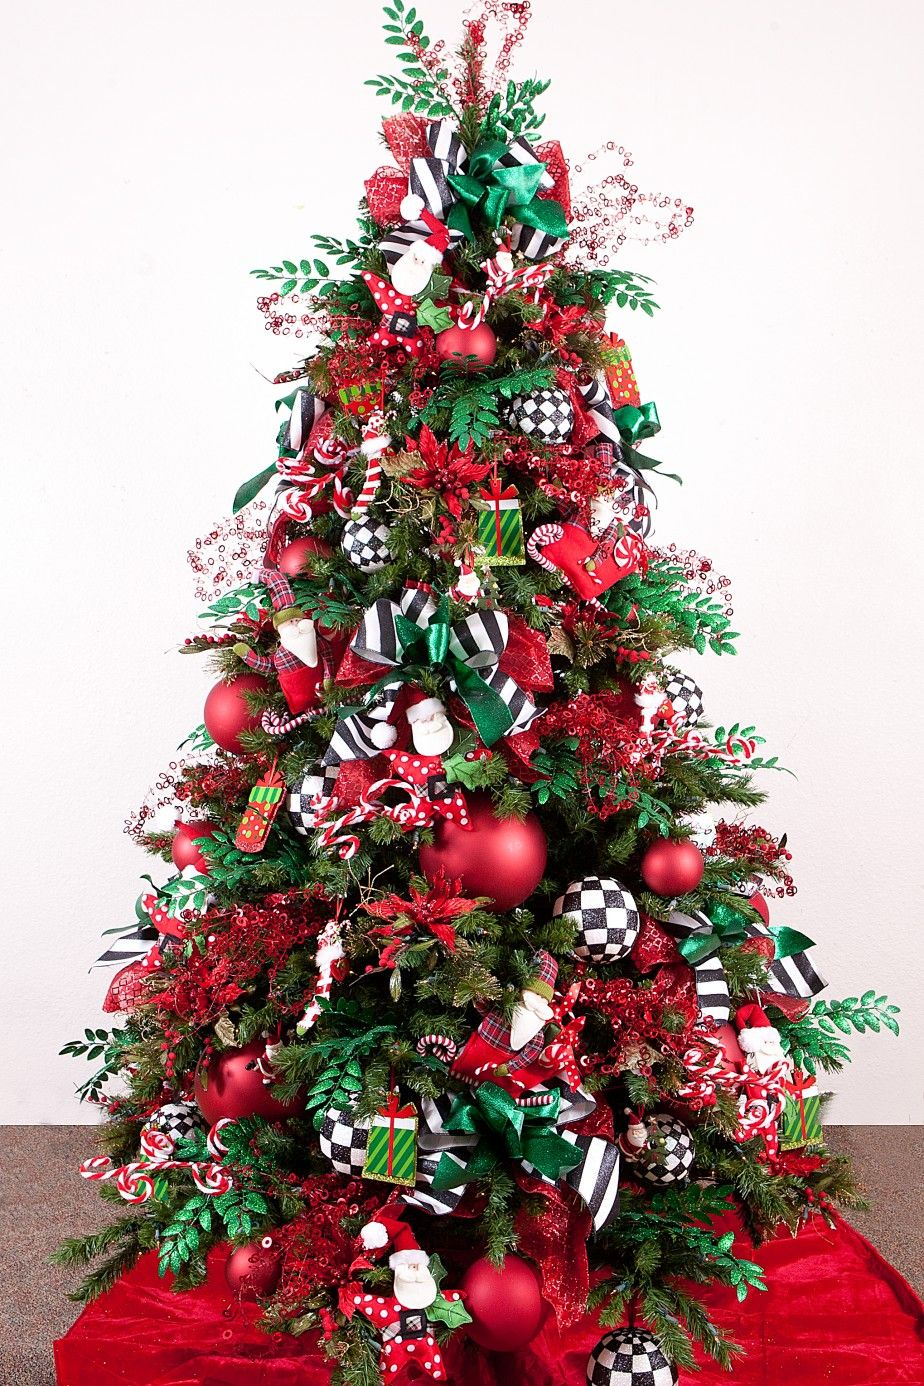 decorating ideas for christmas trees Tree